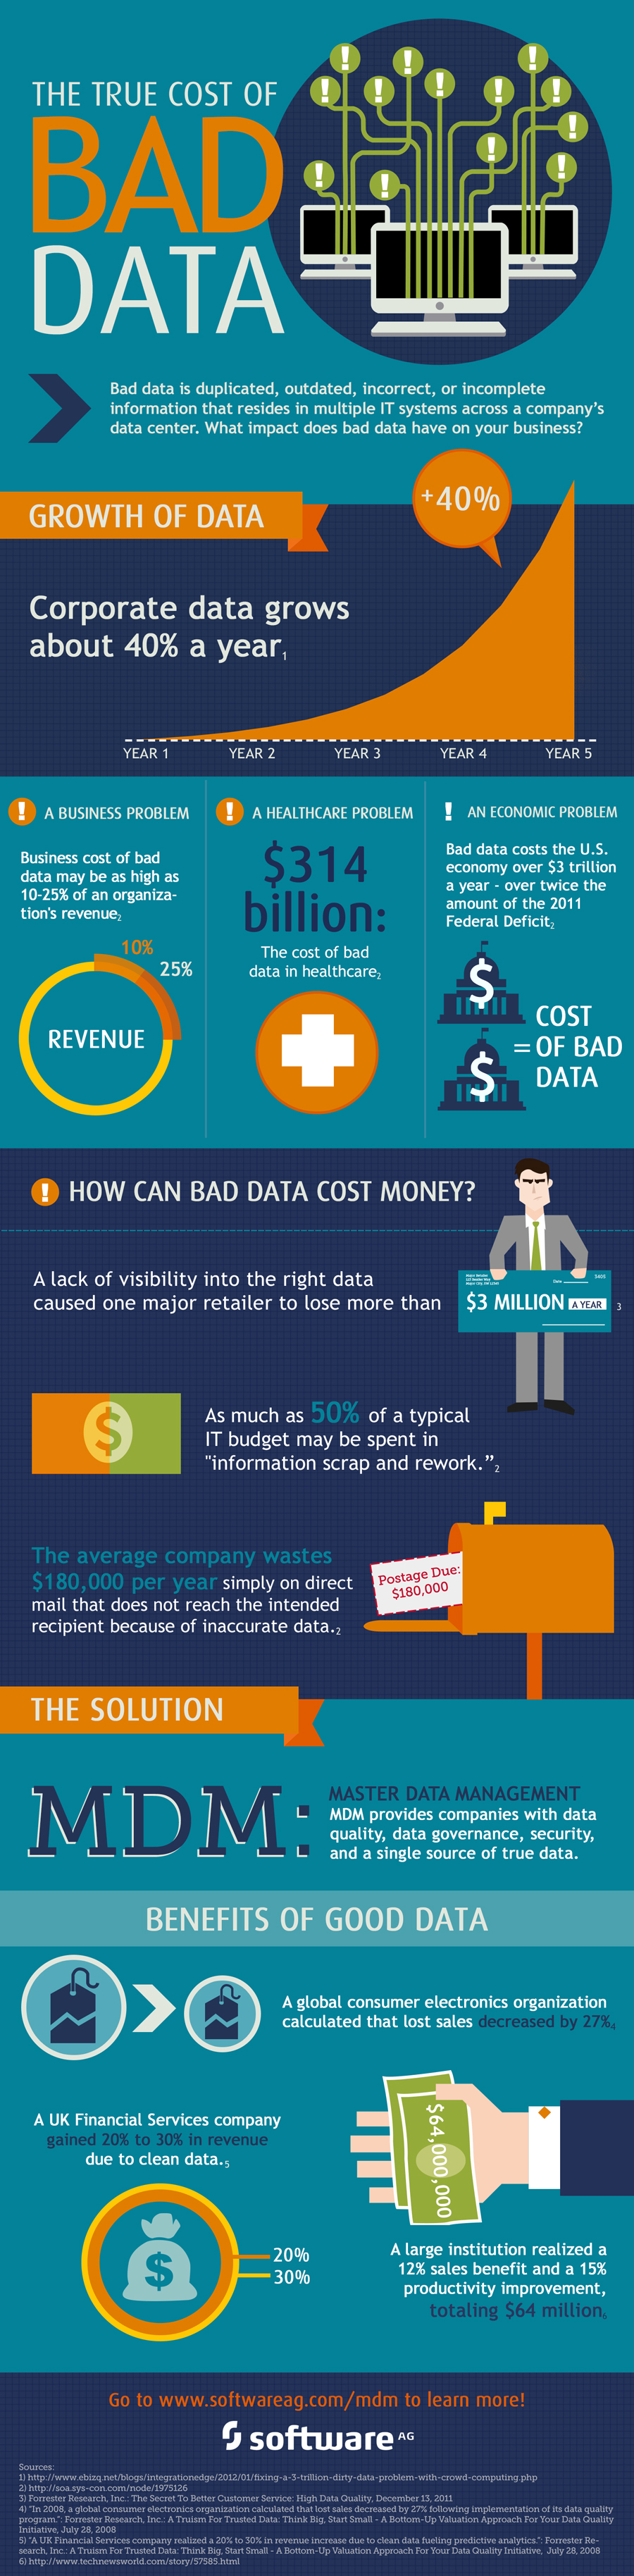 The True Cost Of Bad Data